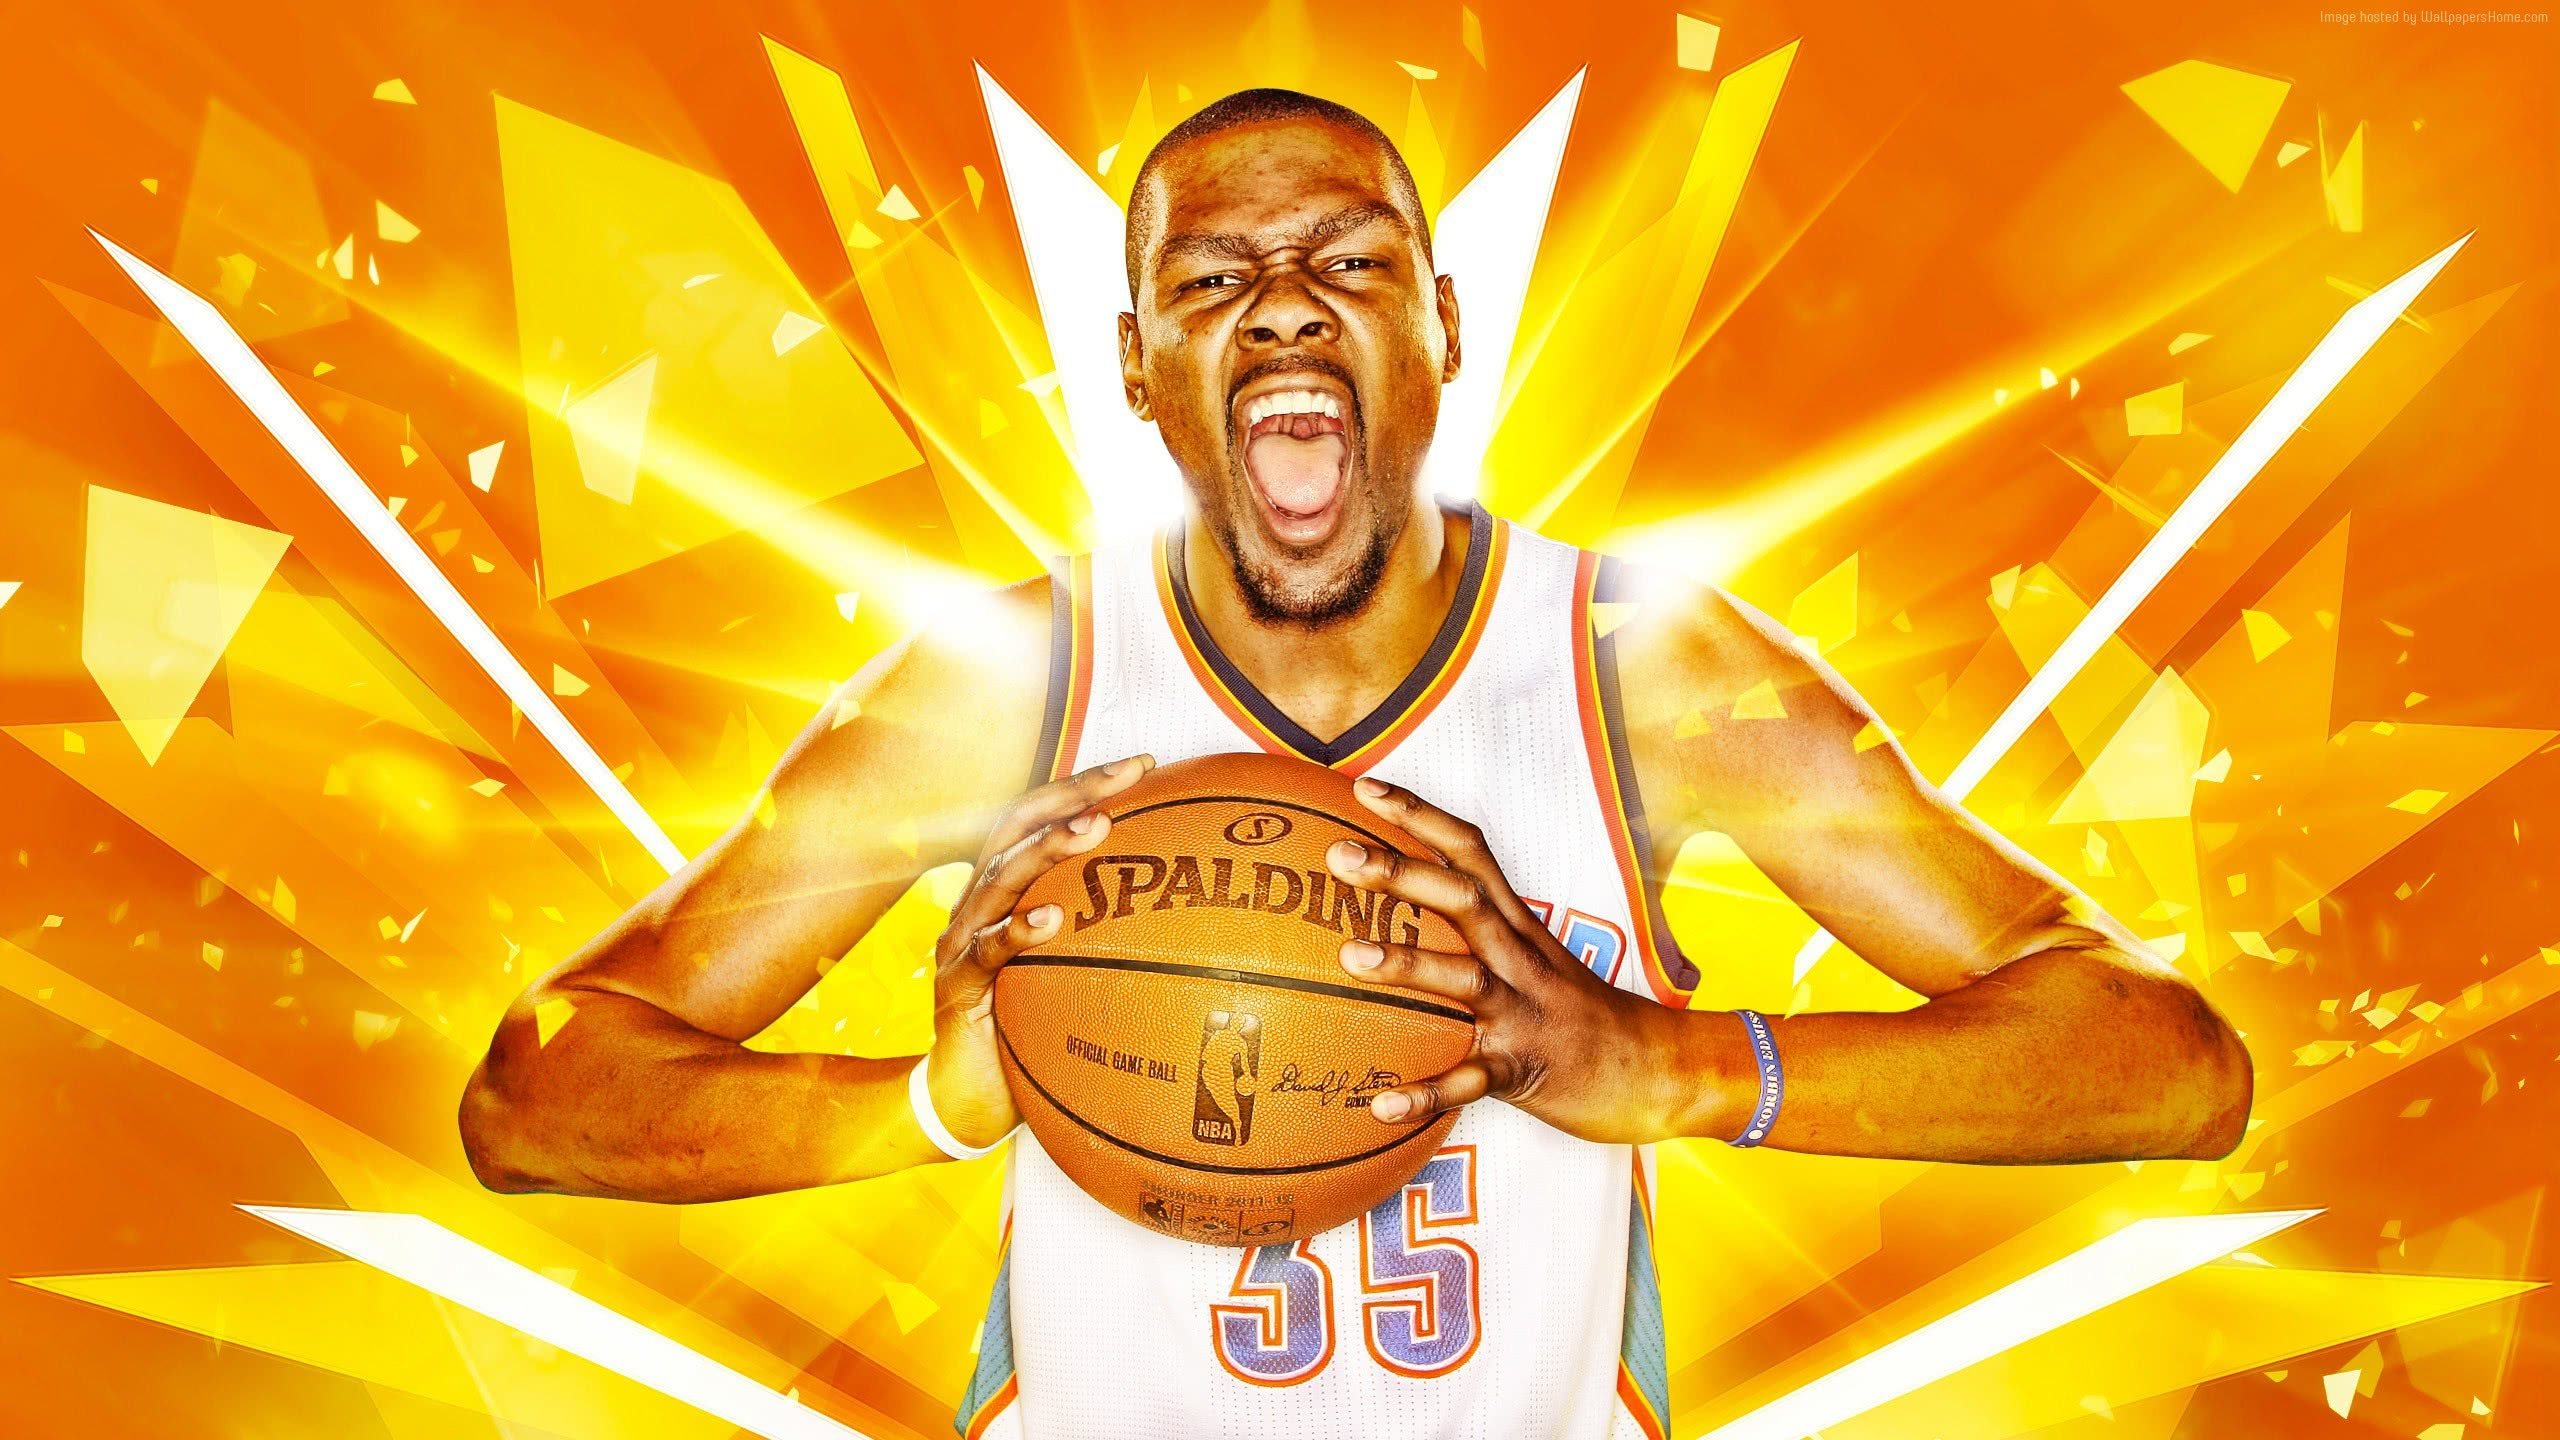 kevin durant golden state warriors basketball nba wqhd 1440p wallpaper